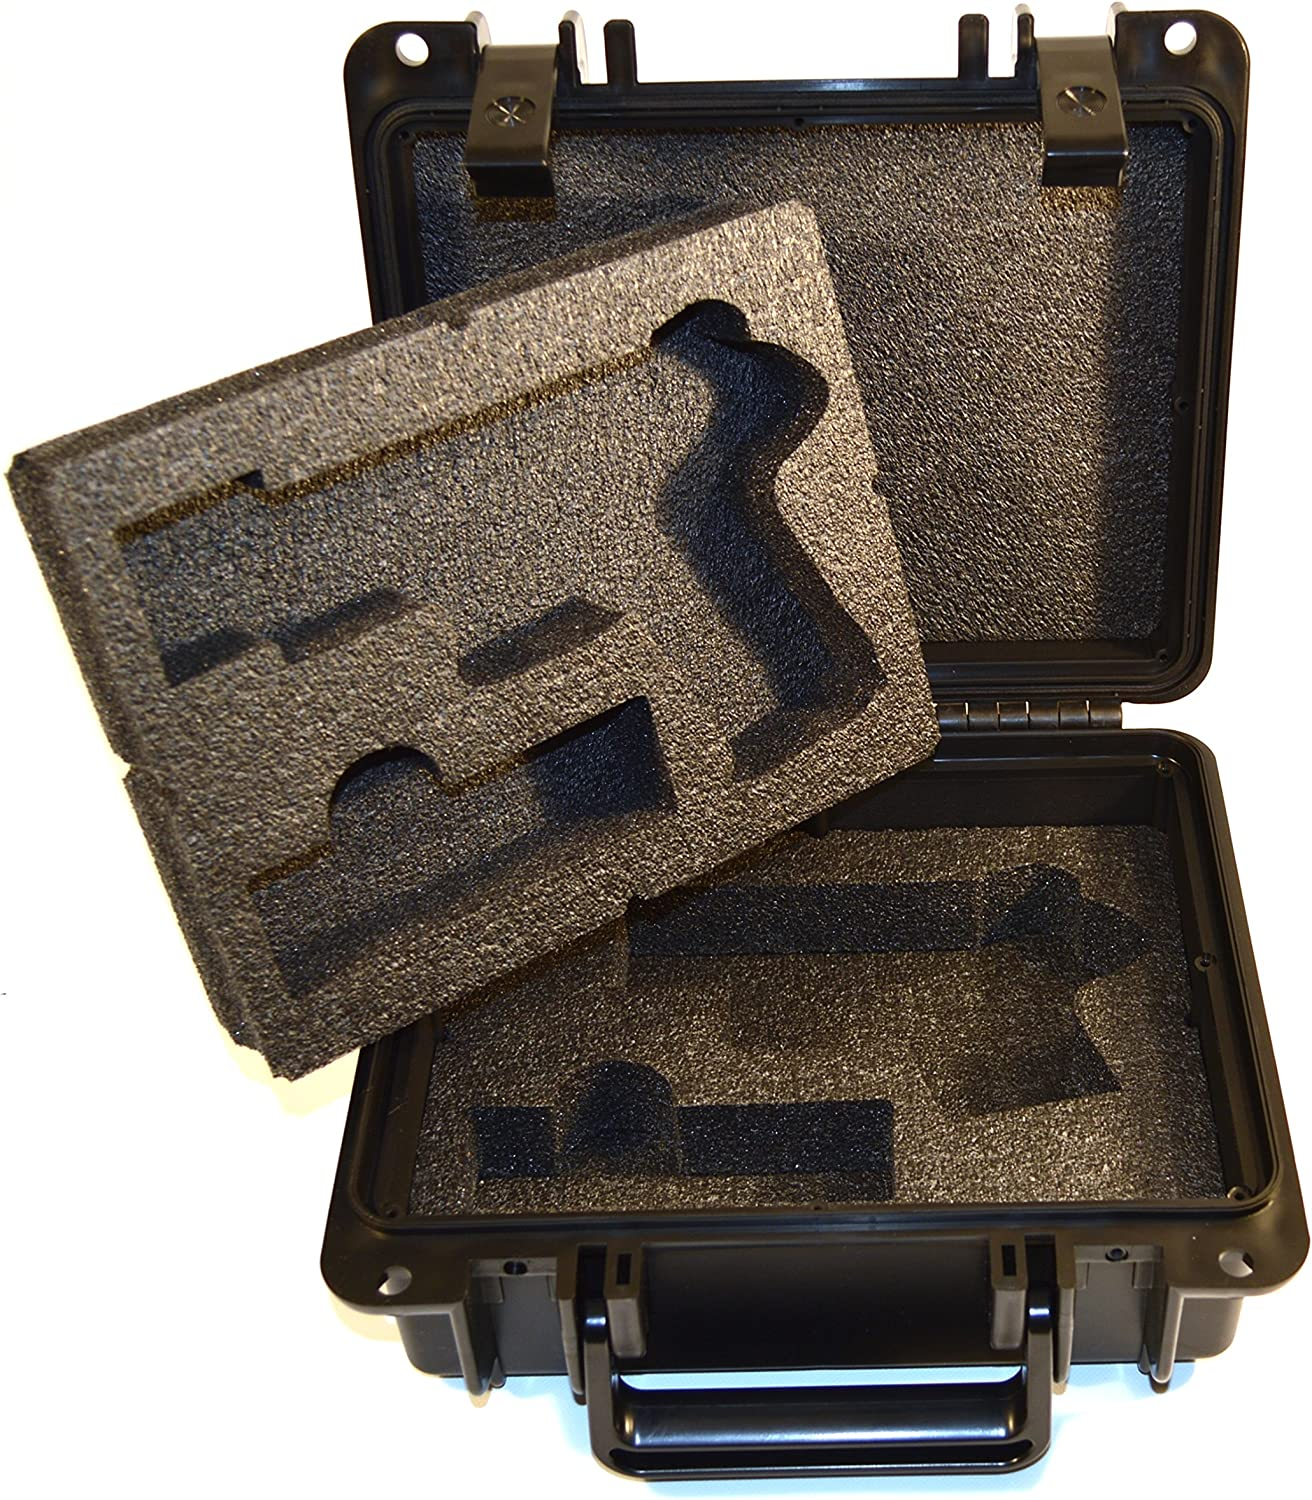 Quick Fire Outlet ☆ Free Shipping Cases QF340 MultiFit Pistol Case San Francisco Mall